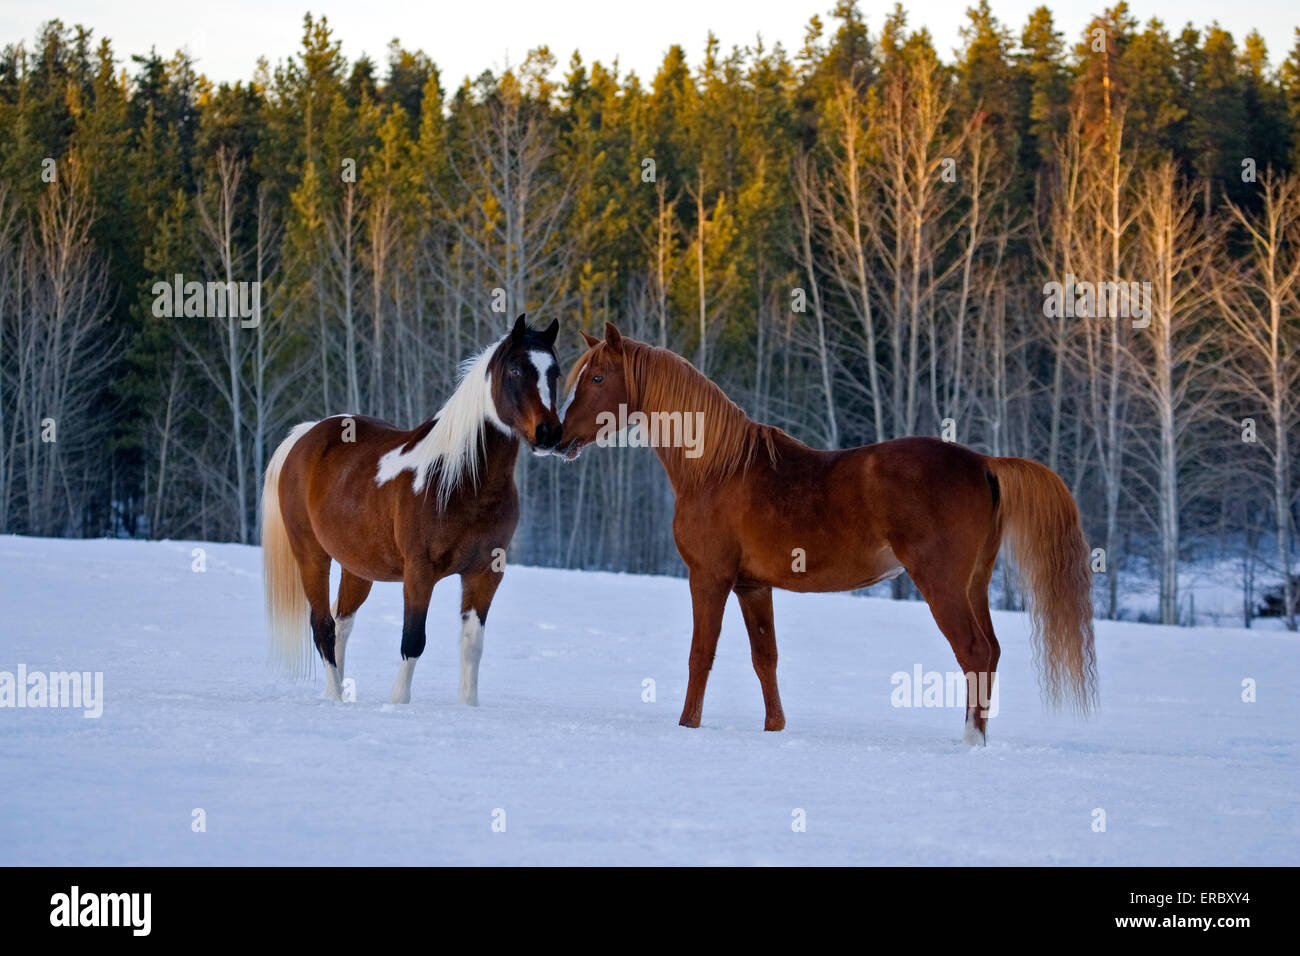 Arabian chestnut Stallion and Paint Arabian Gelding together in meadow on snow - Stock Image